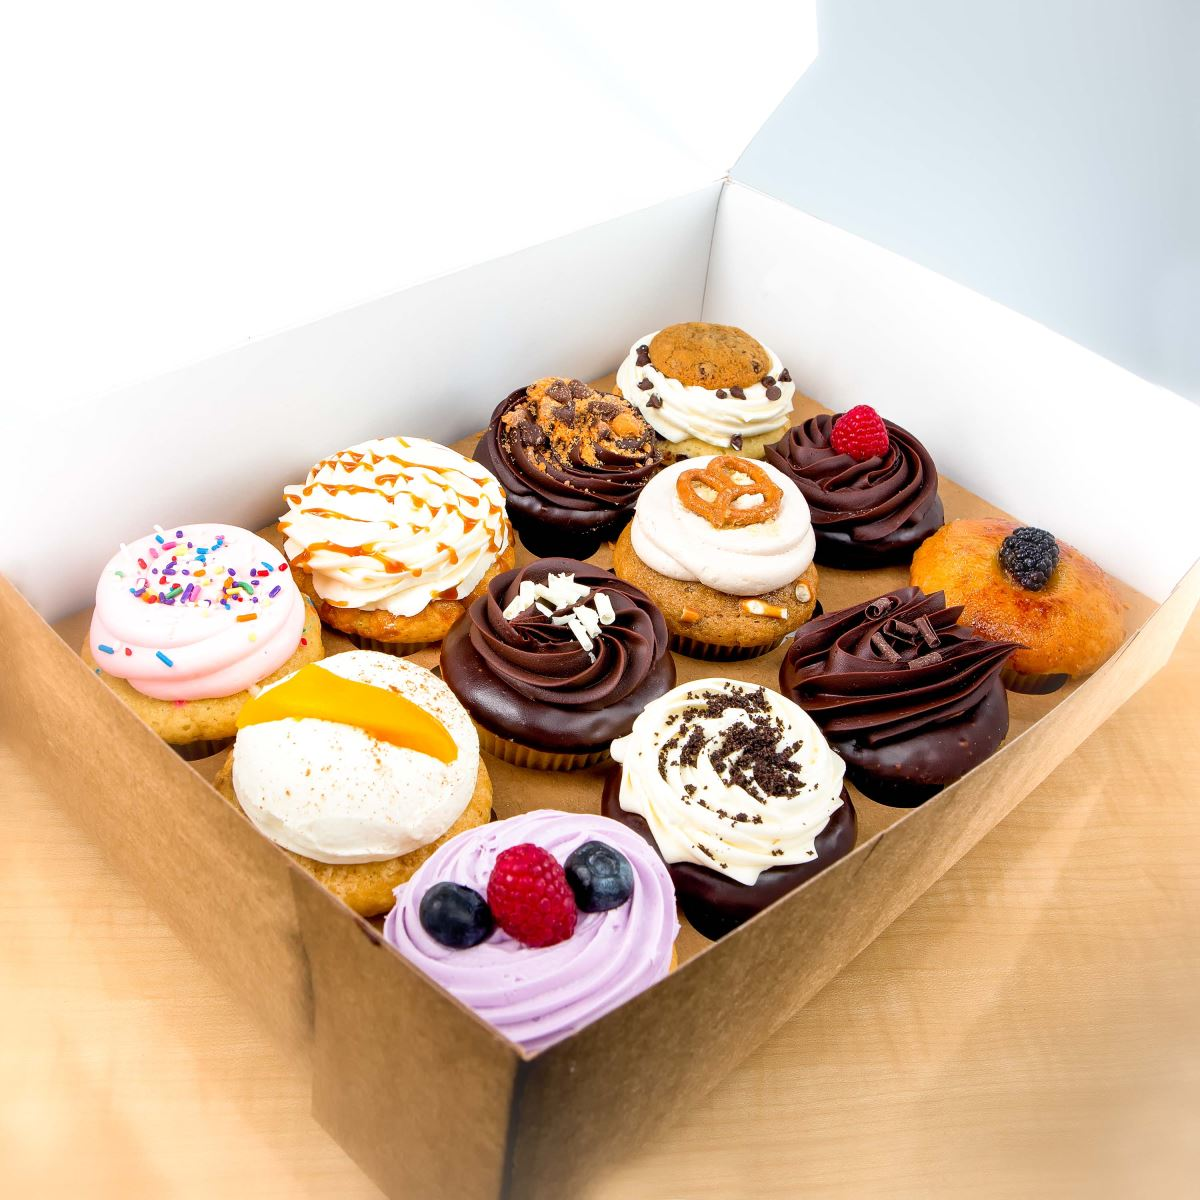 A box holds 12 cupcakes decorated with pink, white, chocolate, and orange frosting.